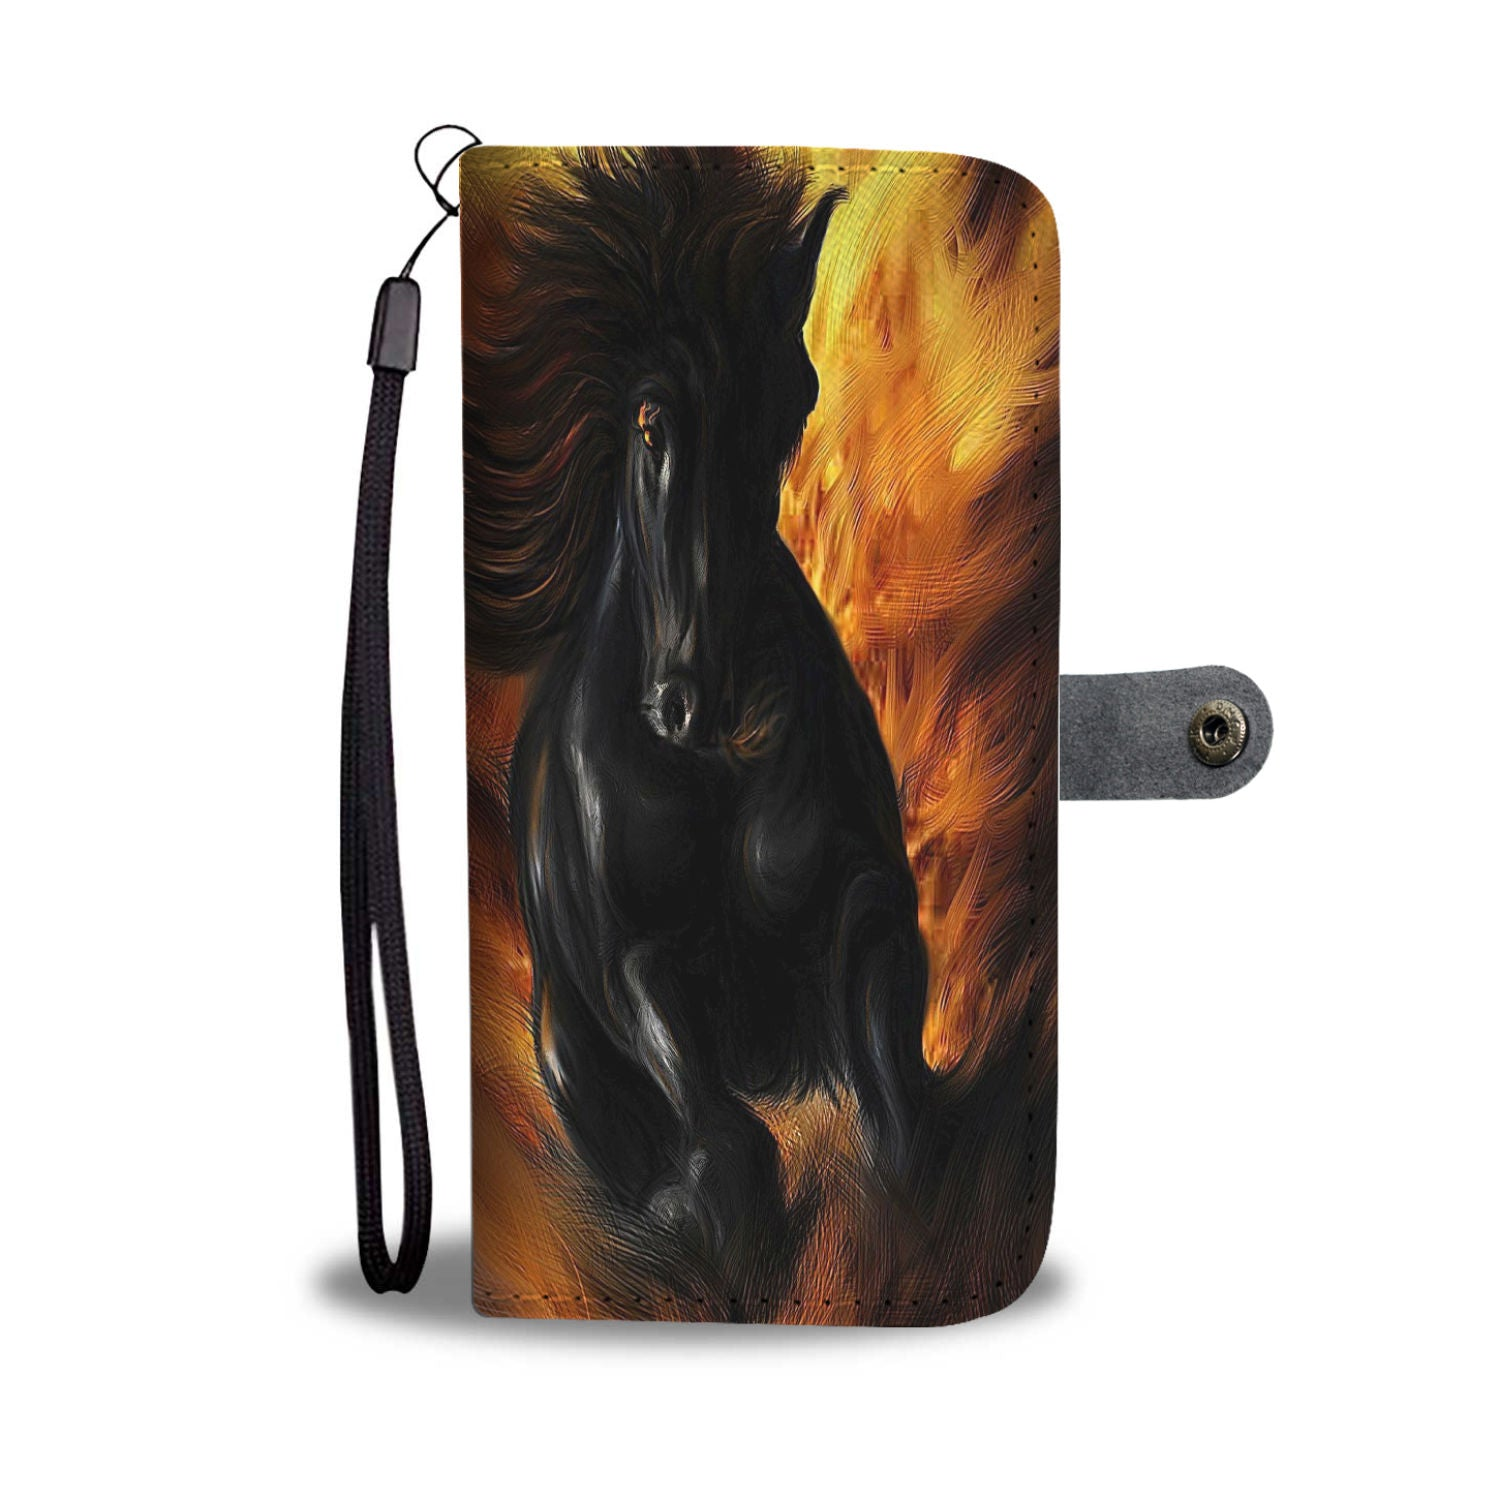 Fire and Ice Horse Lovers PHONE WALLET CASE - 70+ PHONE MODELS SUPPORTED